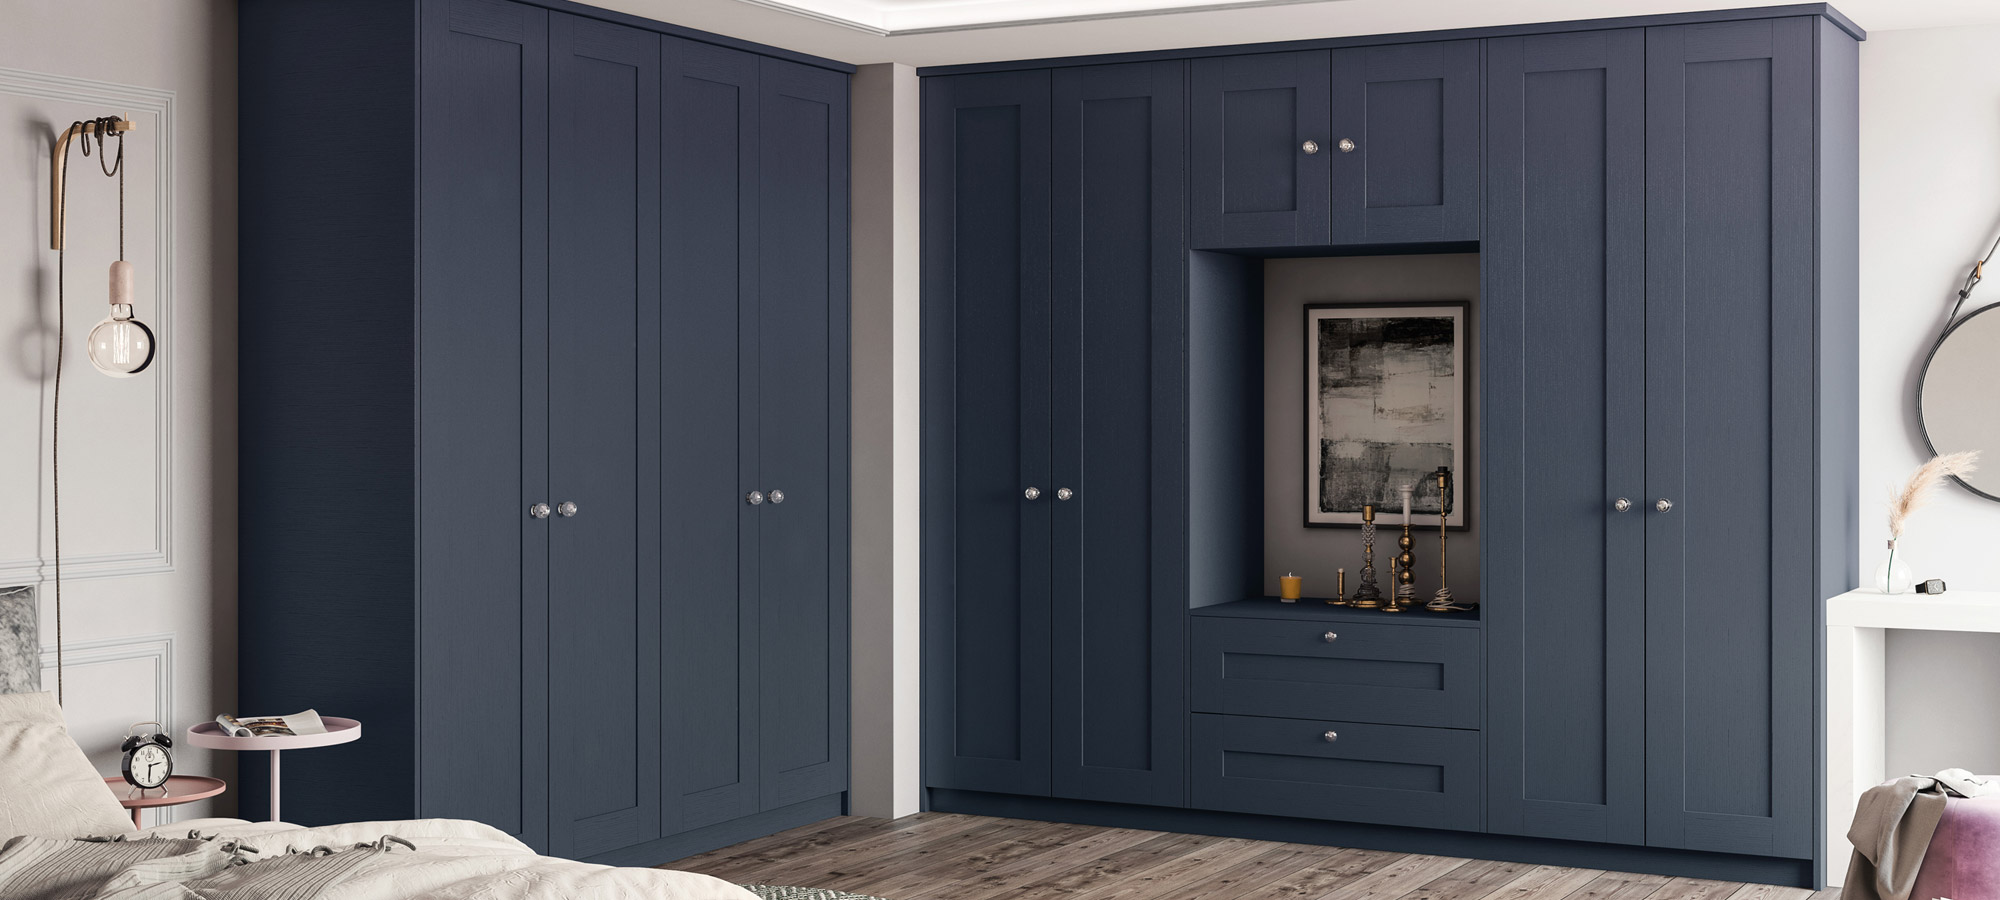 Alderley Kitchens by The Panelling Centre